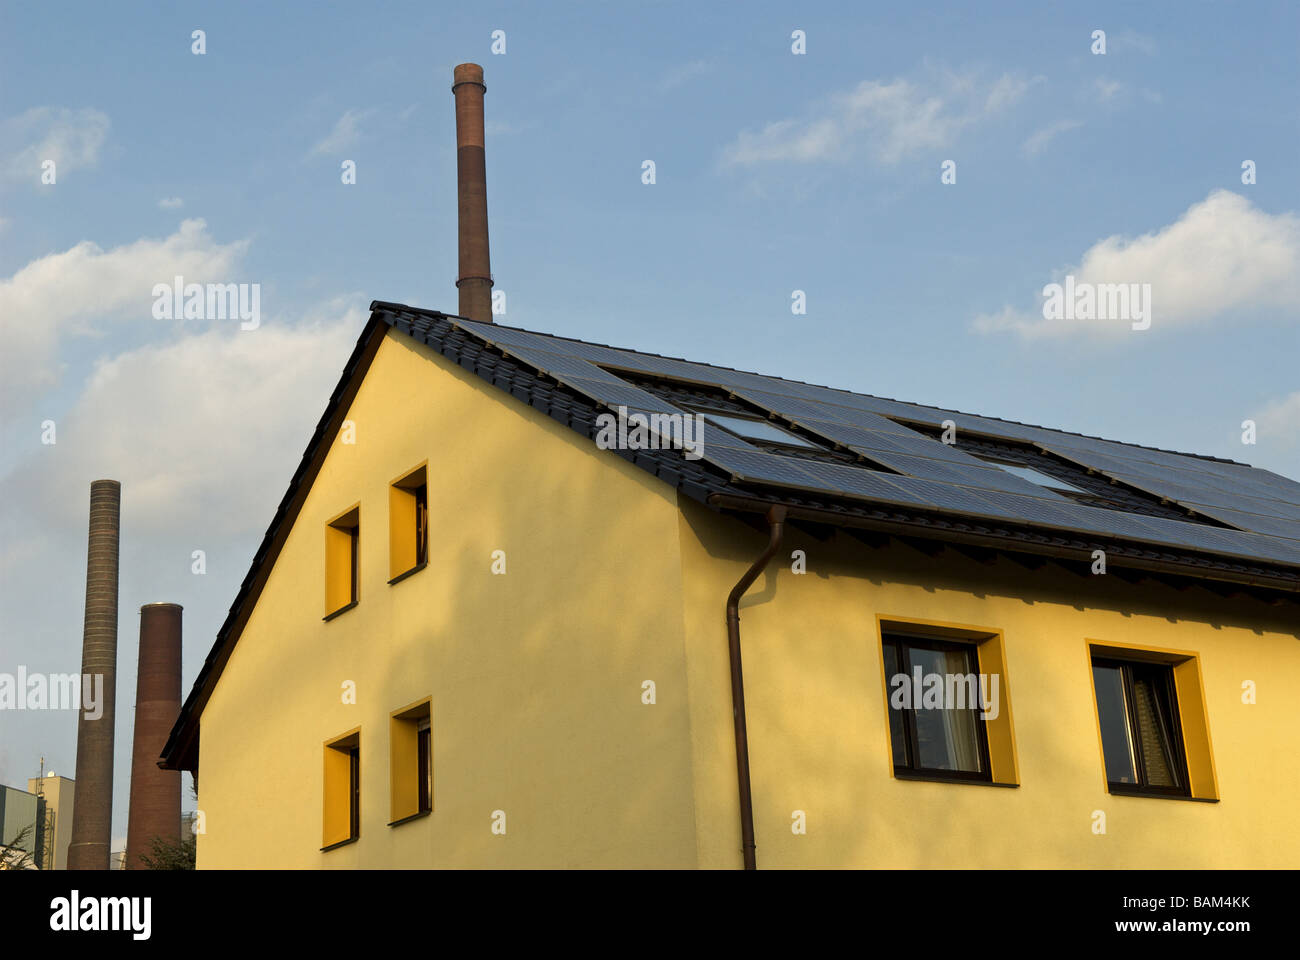 Solar panels fitted to a roof of a house in Germany. - Stock Image